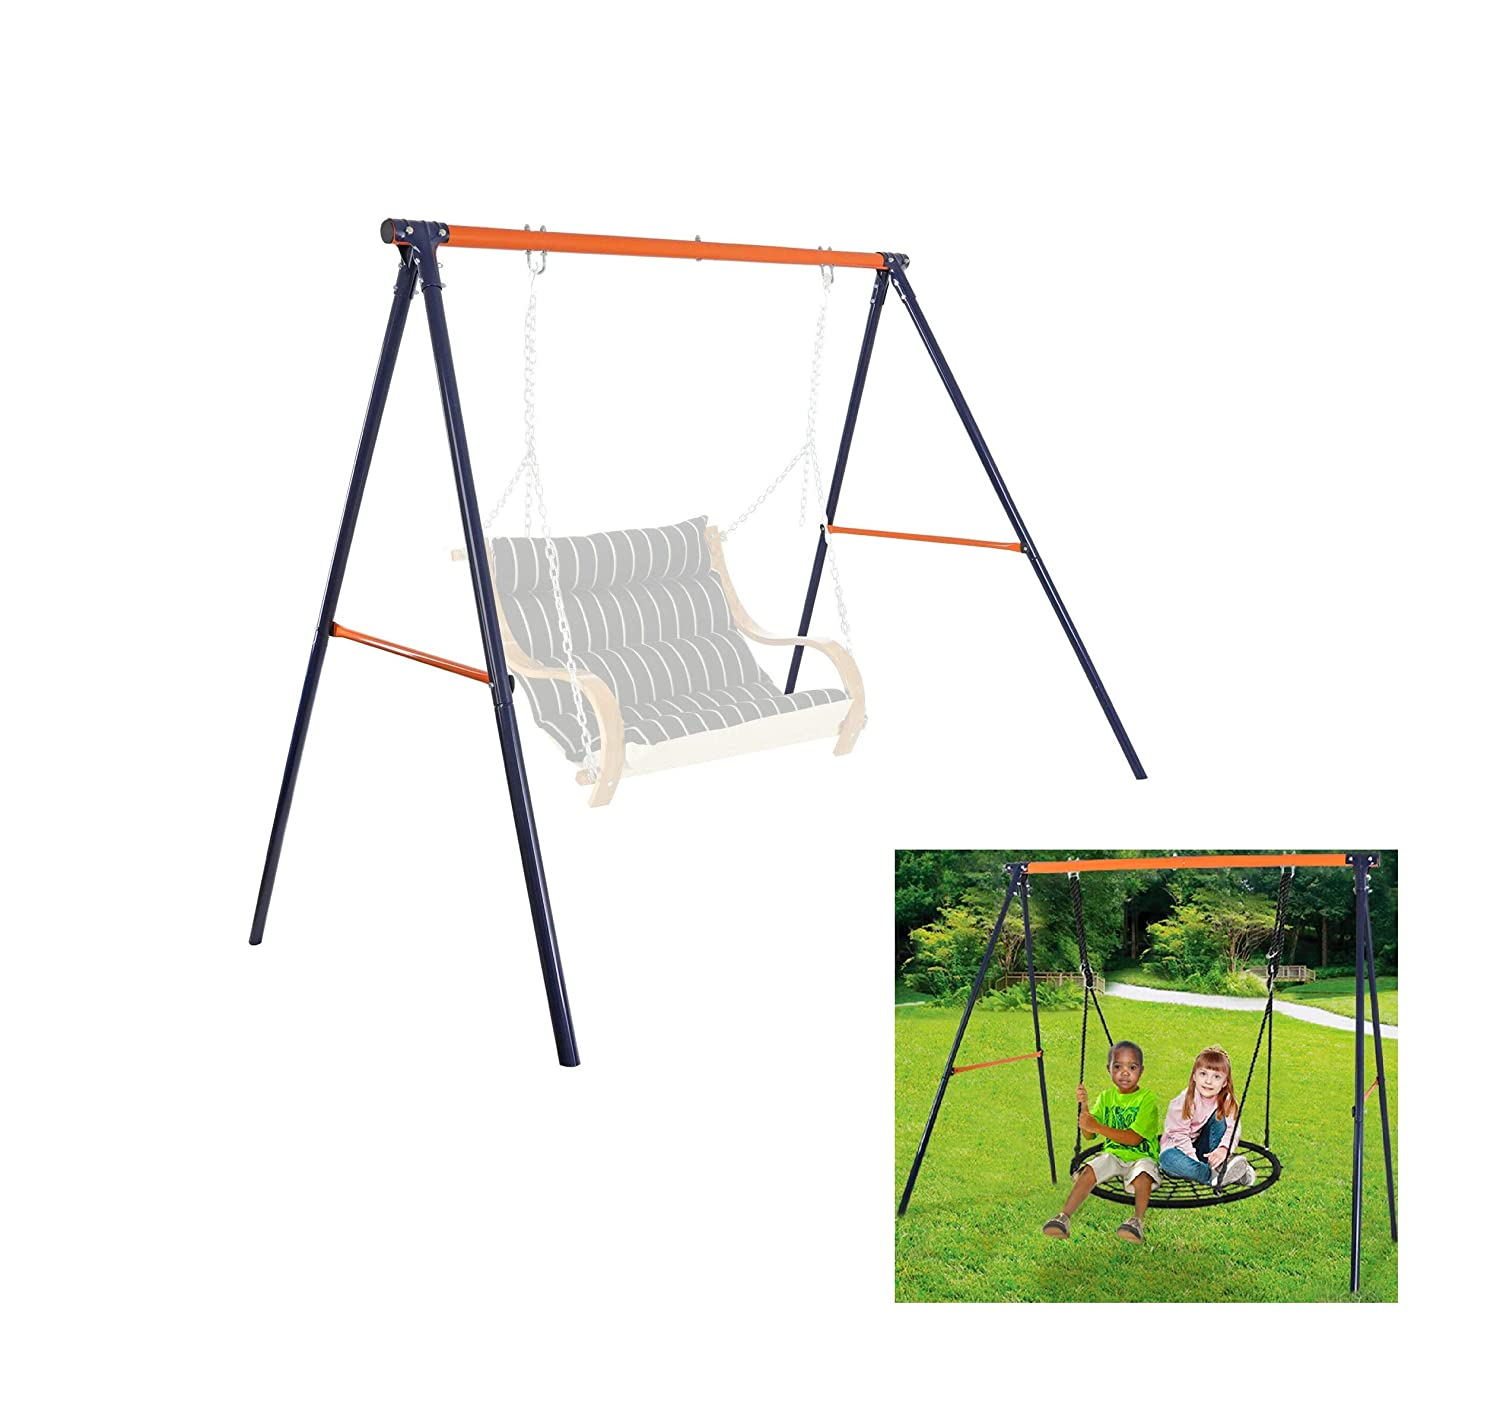 Strange Metal Swing Safety Kit Frame Stand Fun Party Play Chair Kids Uwap Interior Chair Design Uwaporg